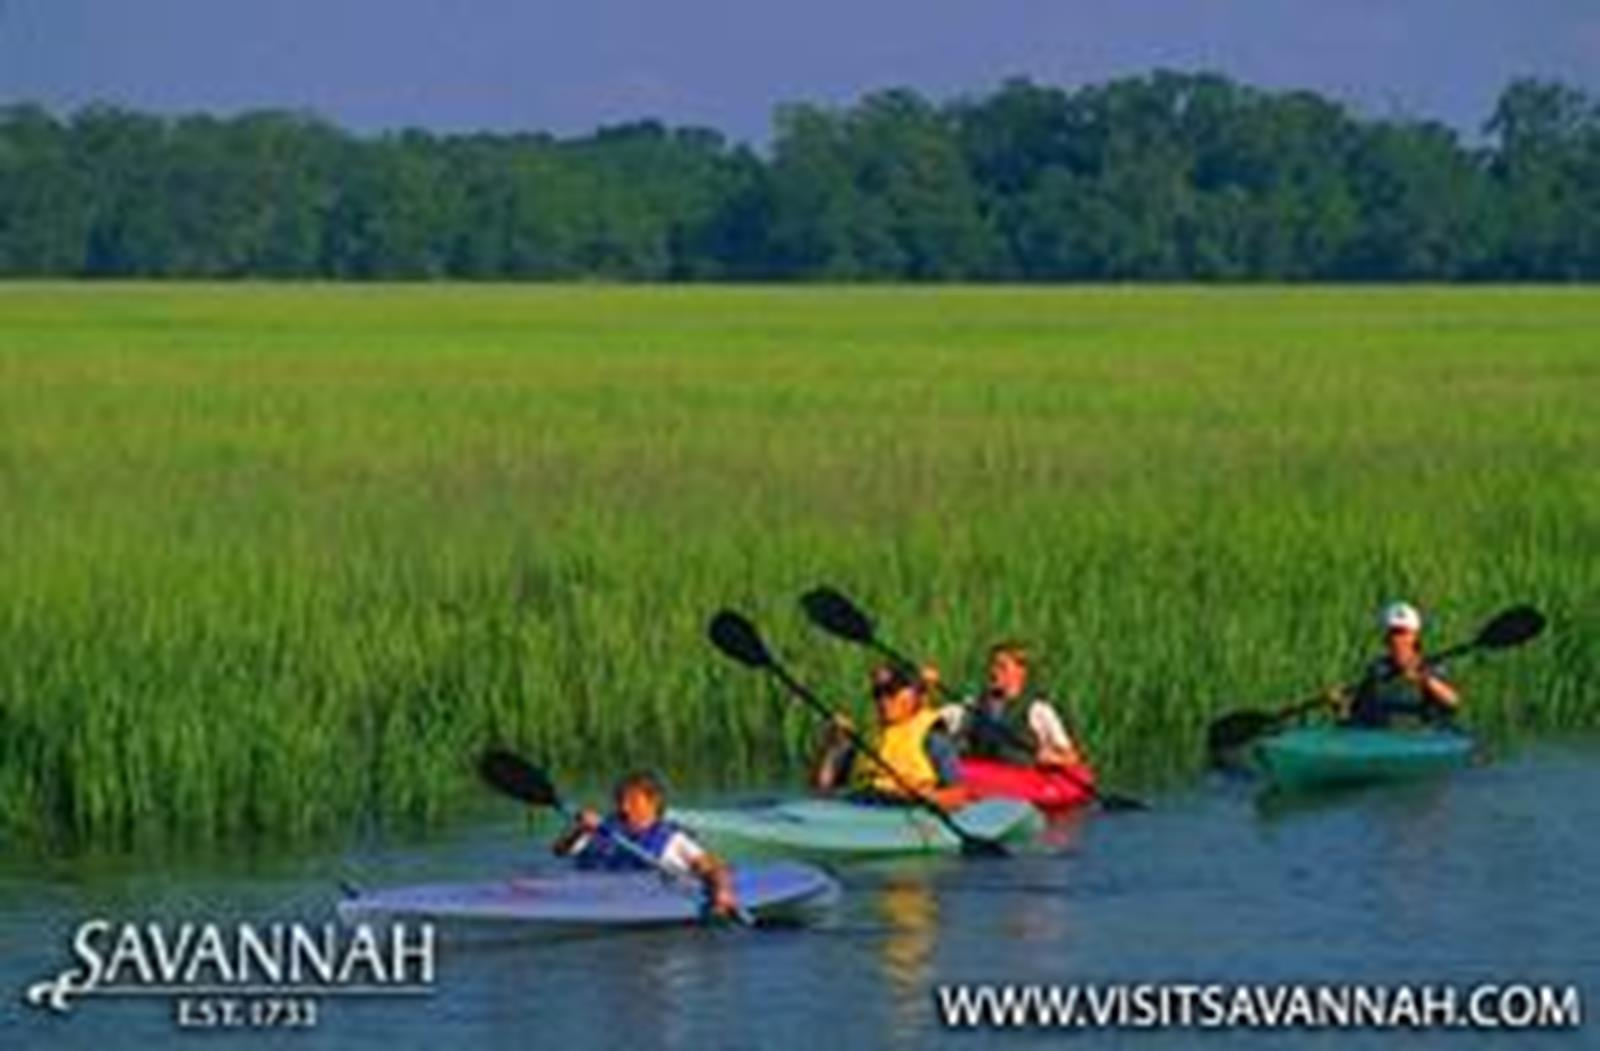 Head outside of Savannah to see all the beauty the surrounding area has to offer